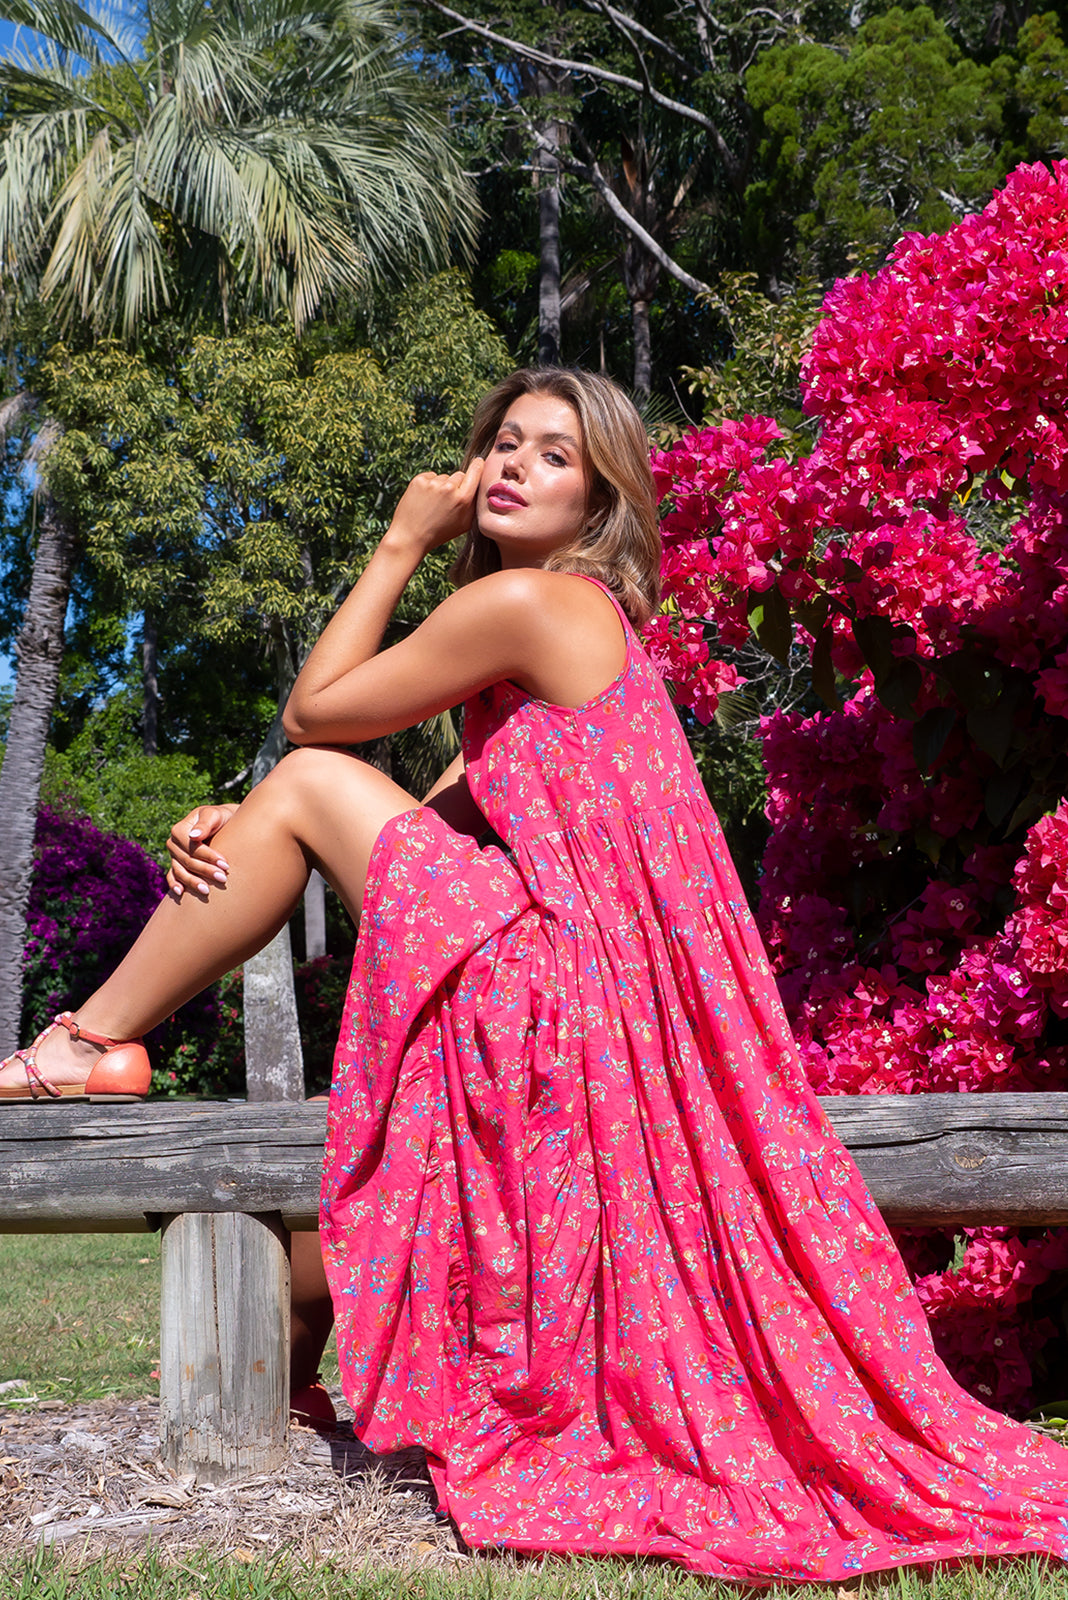 The Lulu Darling Watermelon Fig Maxi Dress features high neck with thin straps, full, tiered skirt falling from under bust, deep side pockets and 70% Cotton, 30% Rayon IN Watermelon base with small fruit print.